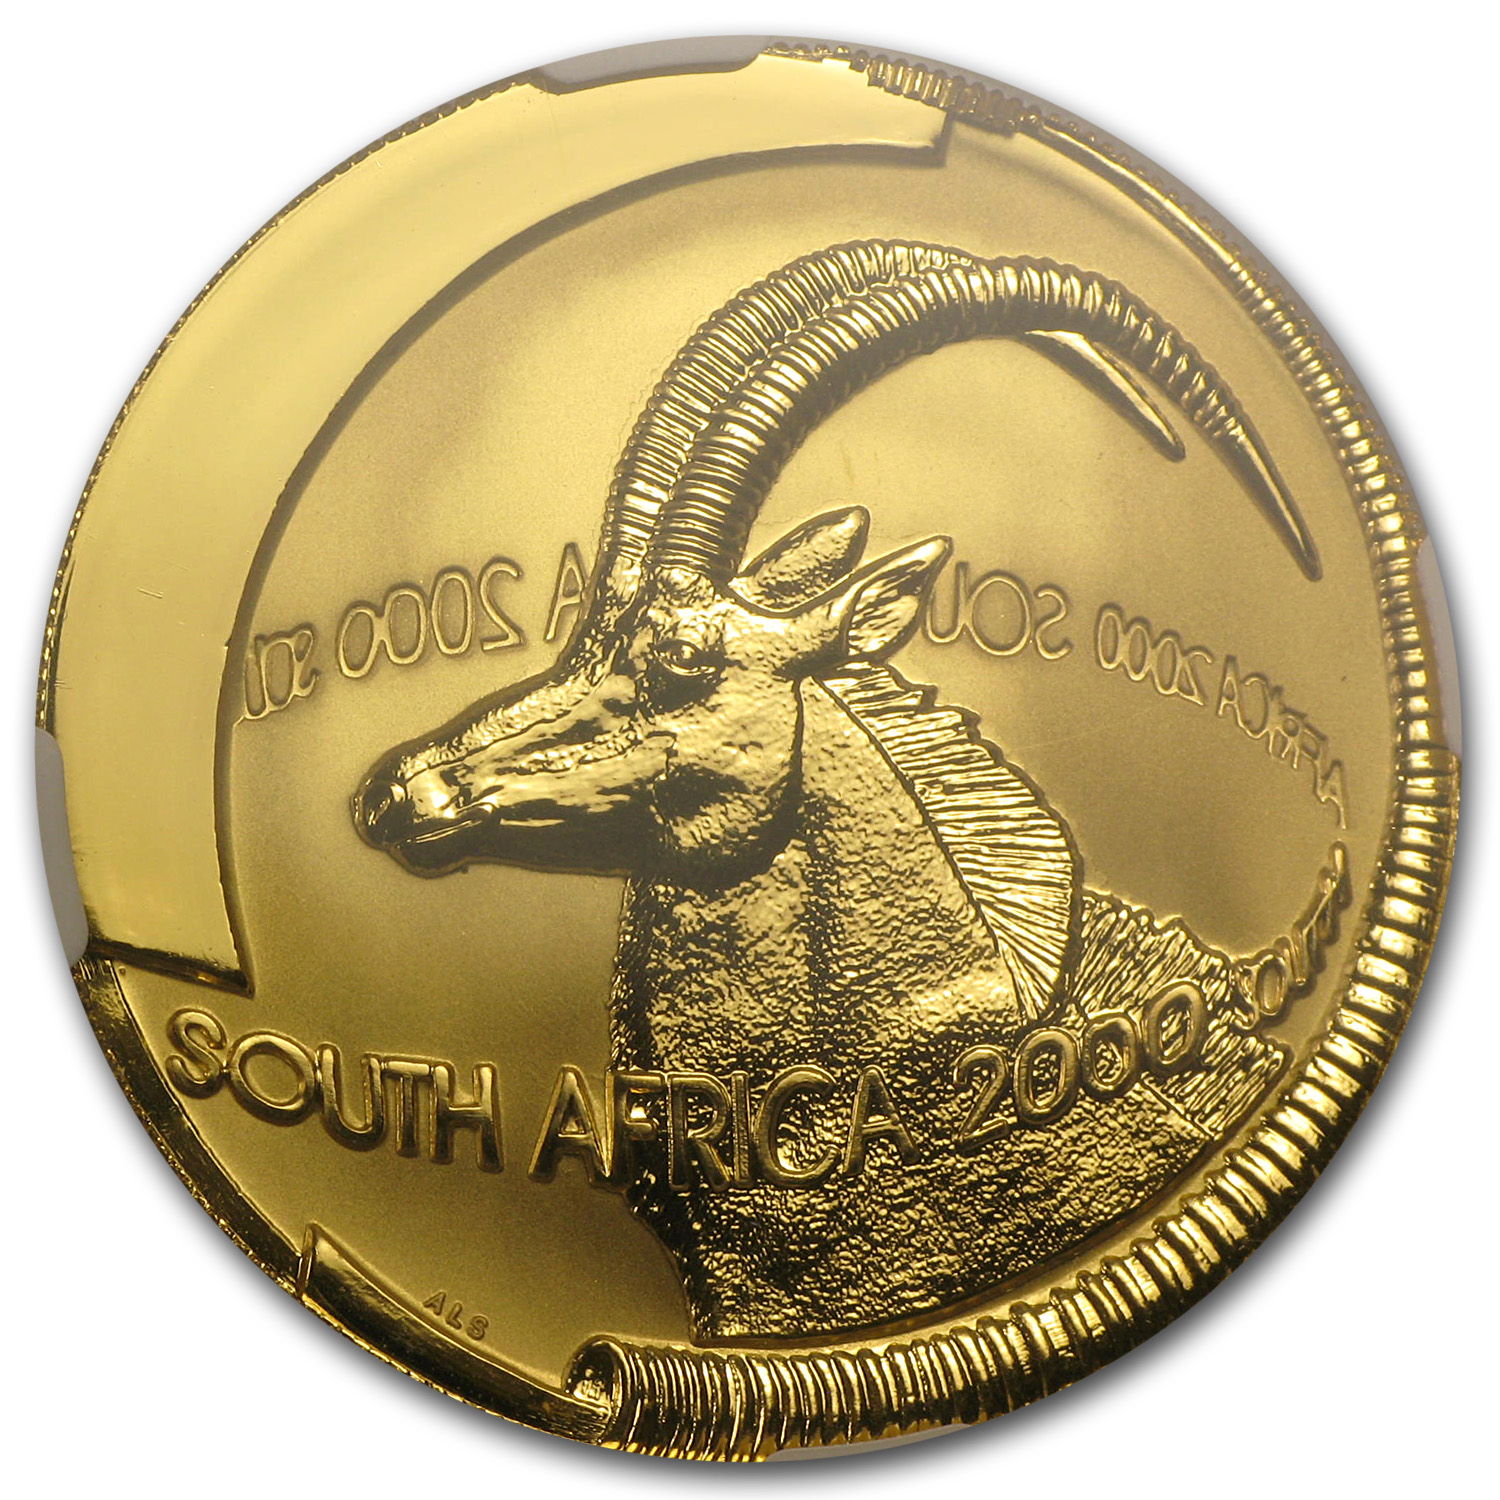 2000 1 oz Gold South African Natura (100 Rand Sable) PF-69 NGC